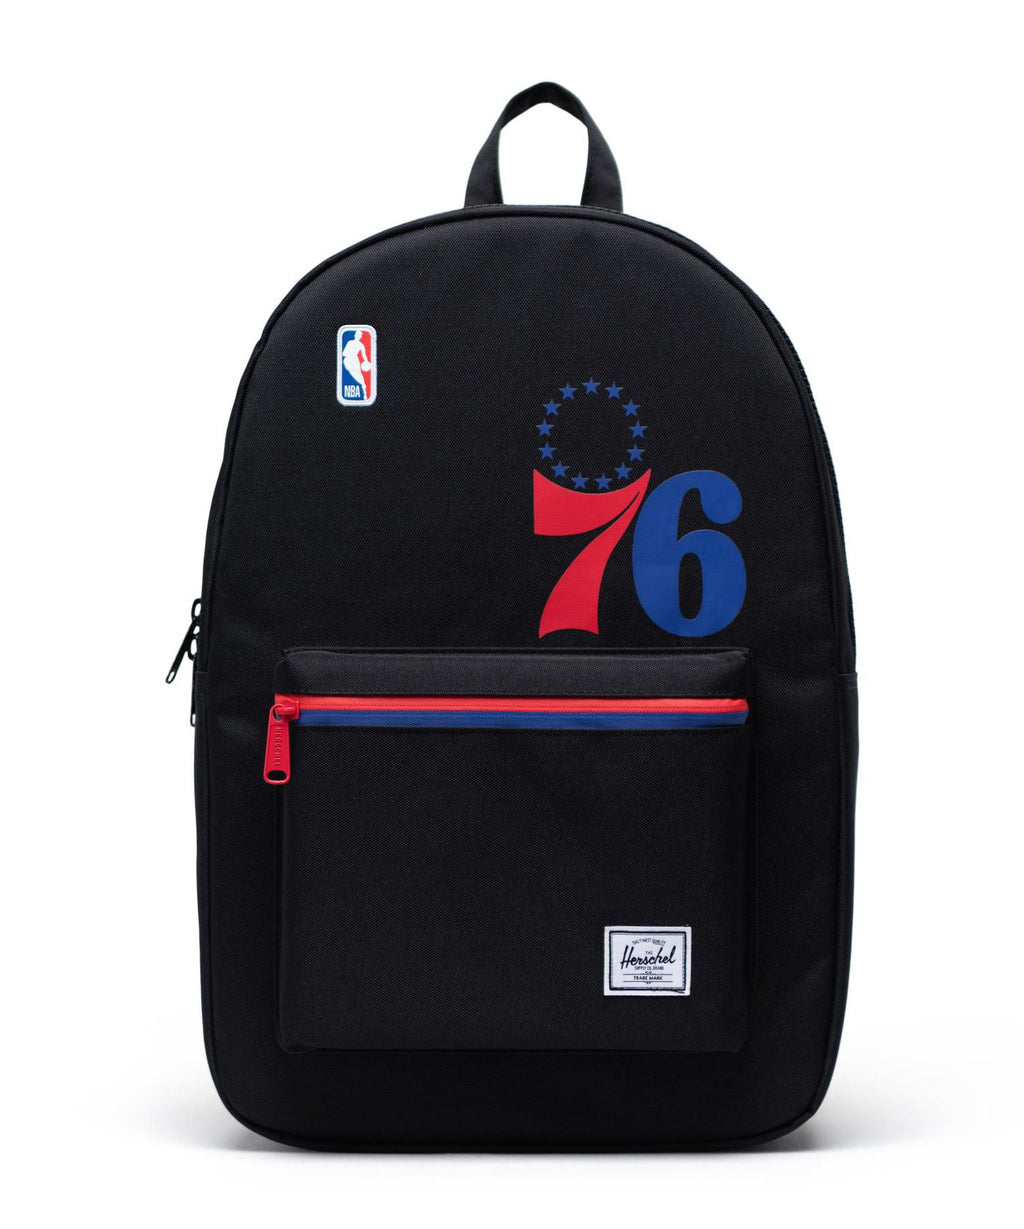 Philadelphia 76ers Settlement Backpack Black/Red/Blue